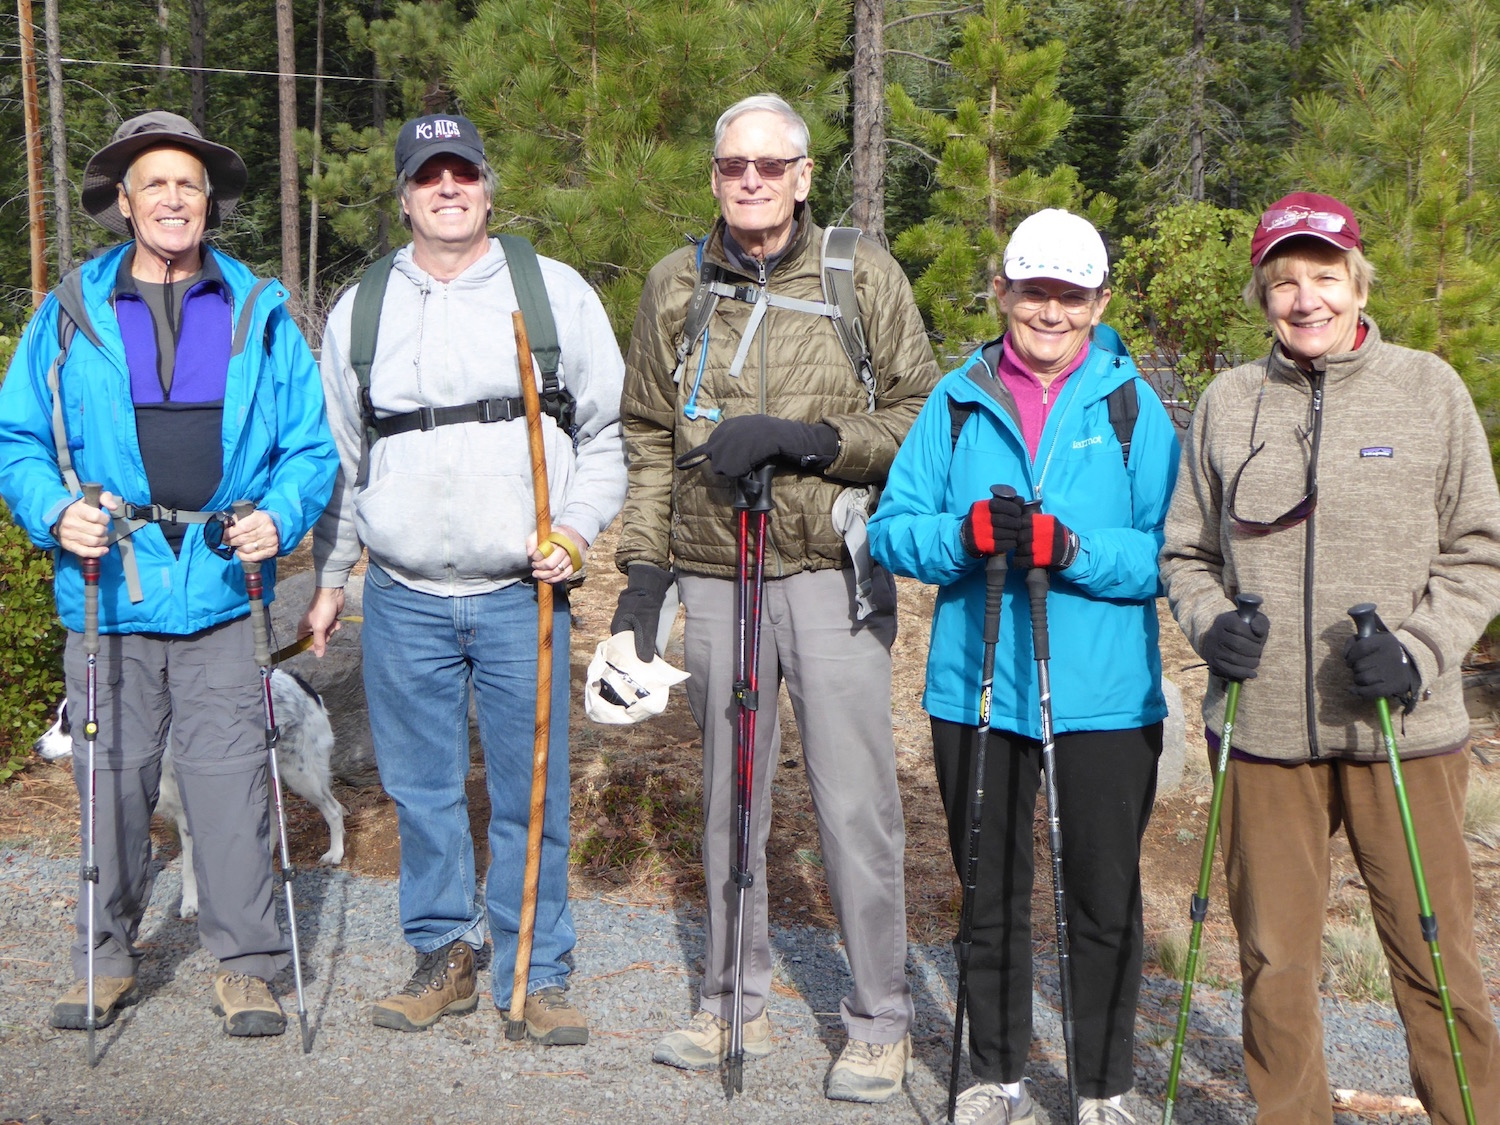 hiking-5withpoles.jpg